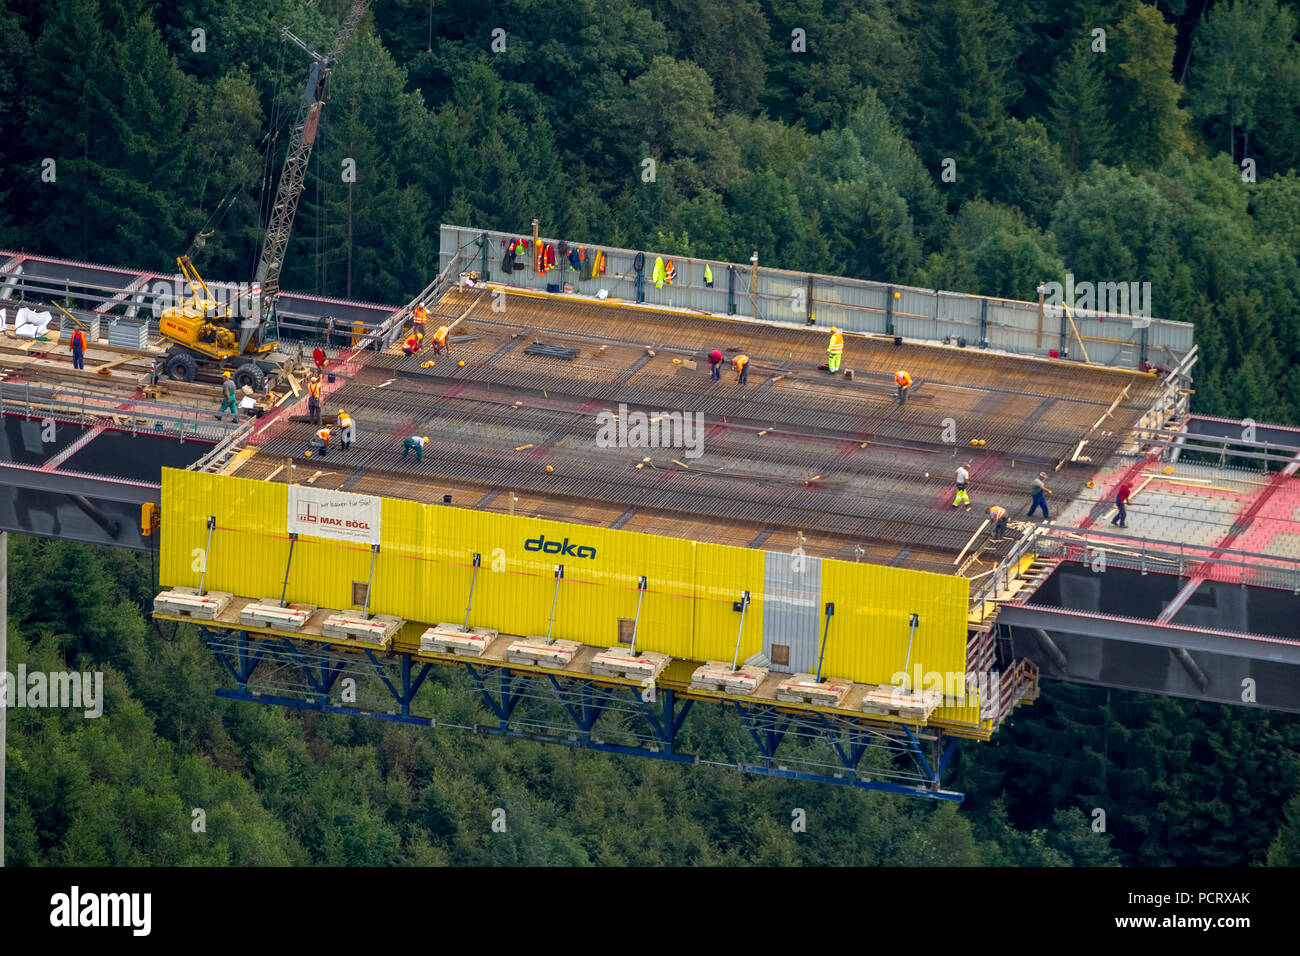 Aerial view, bridge construction site Nuttlar A46, aerial photos of the highest bridge NRW s, Bestwig, Sauerland, North Rhine-Westphalia, Germany - Stock Image